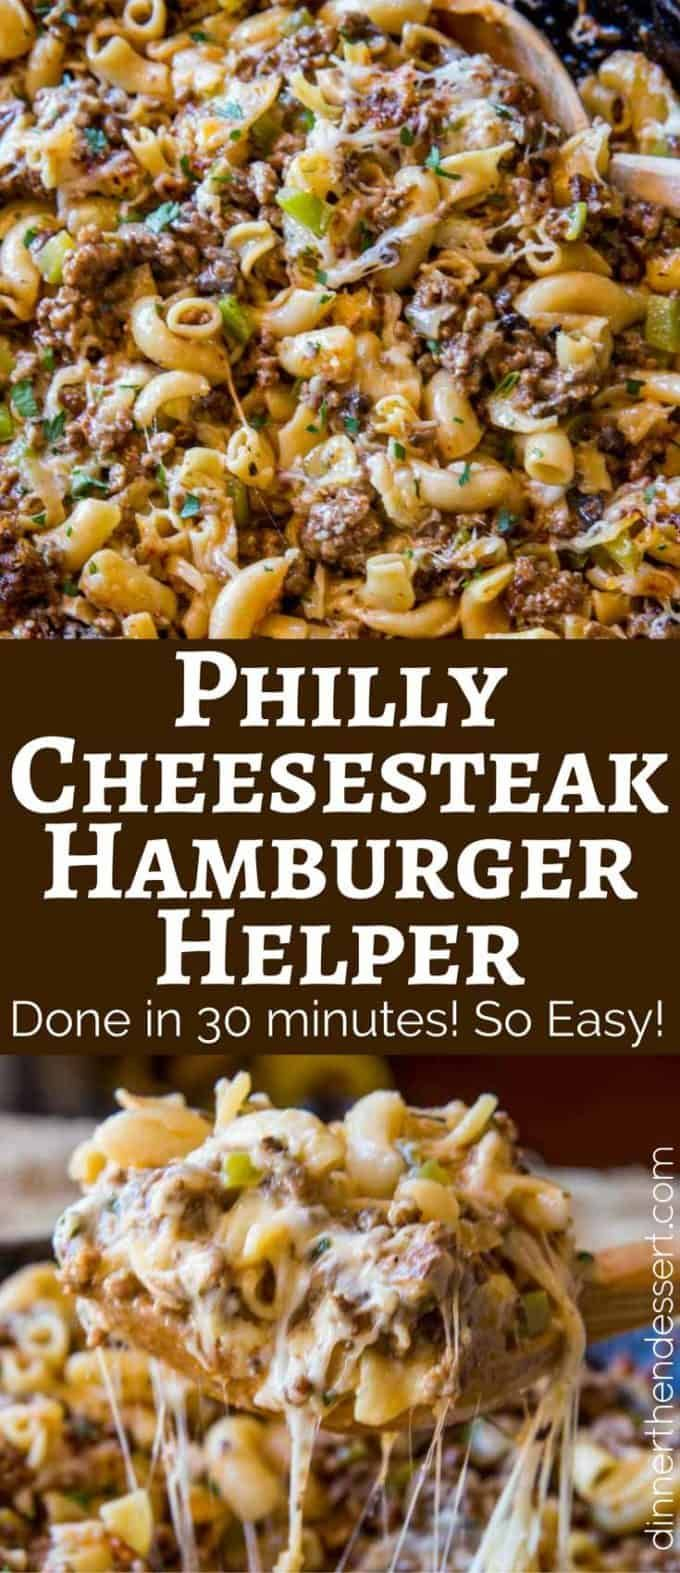 Philly Cheesesteak Hamburger Helper - Dinner, then Dessert #hamburgercassarole